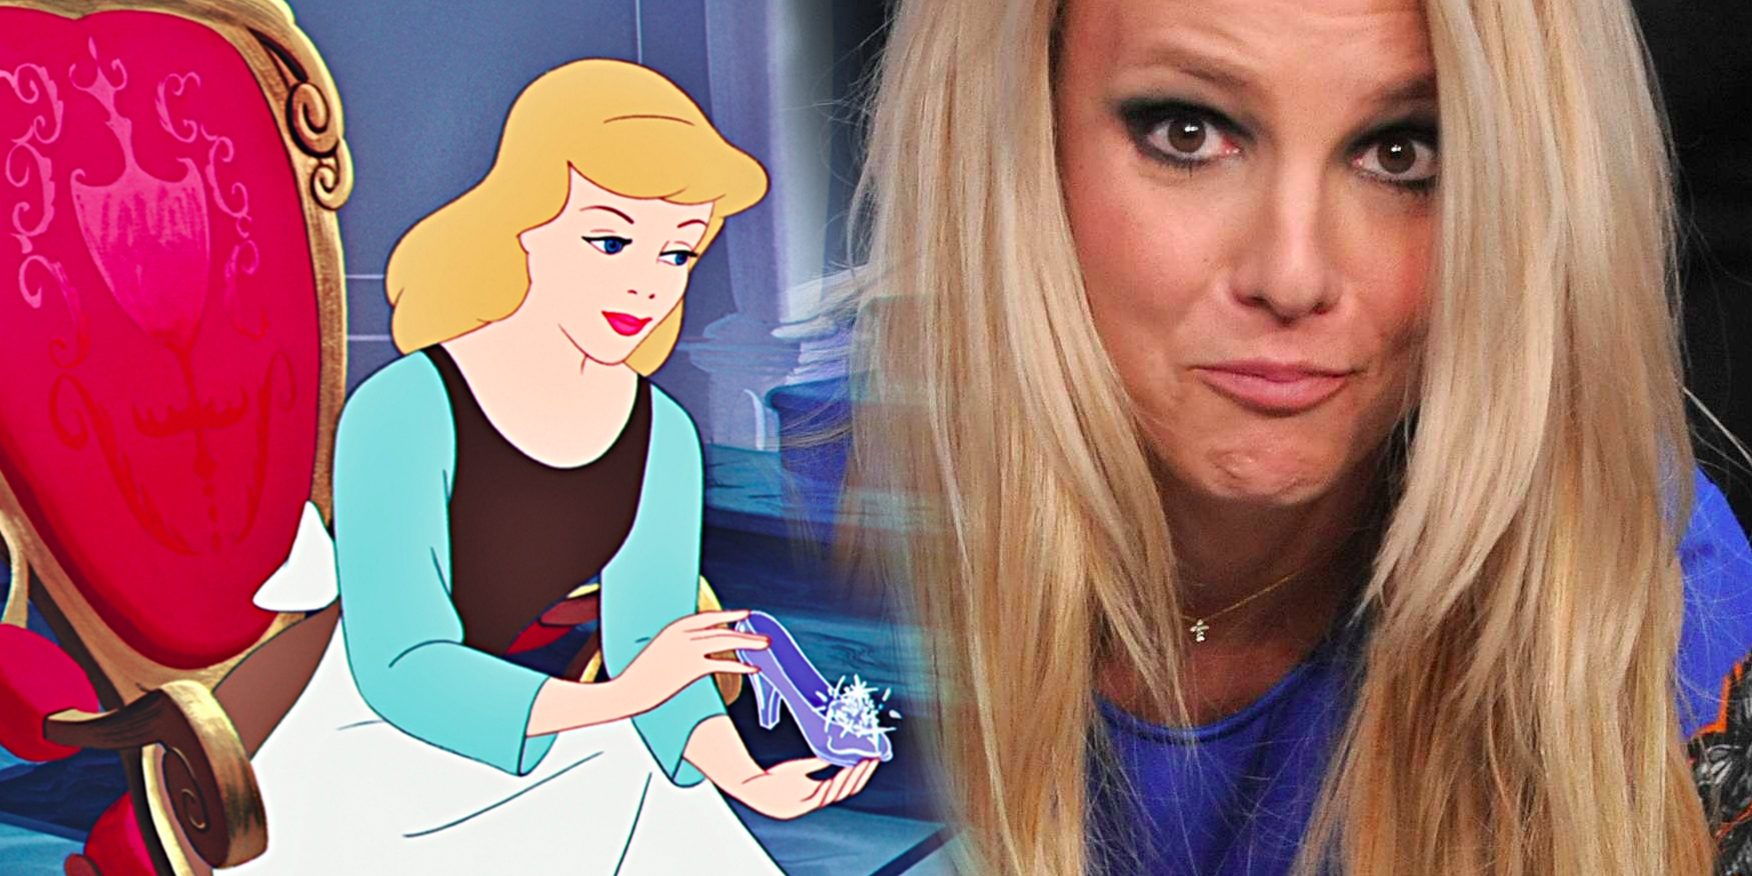 Who-Said-It-Britney-Spears-or-Cinderella